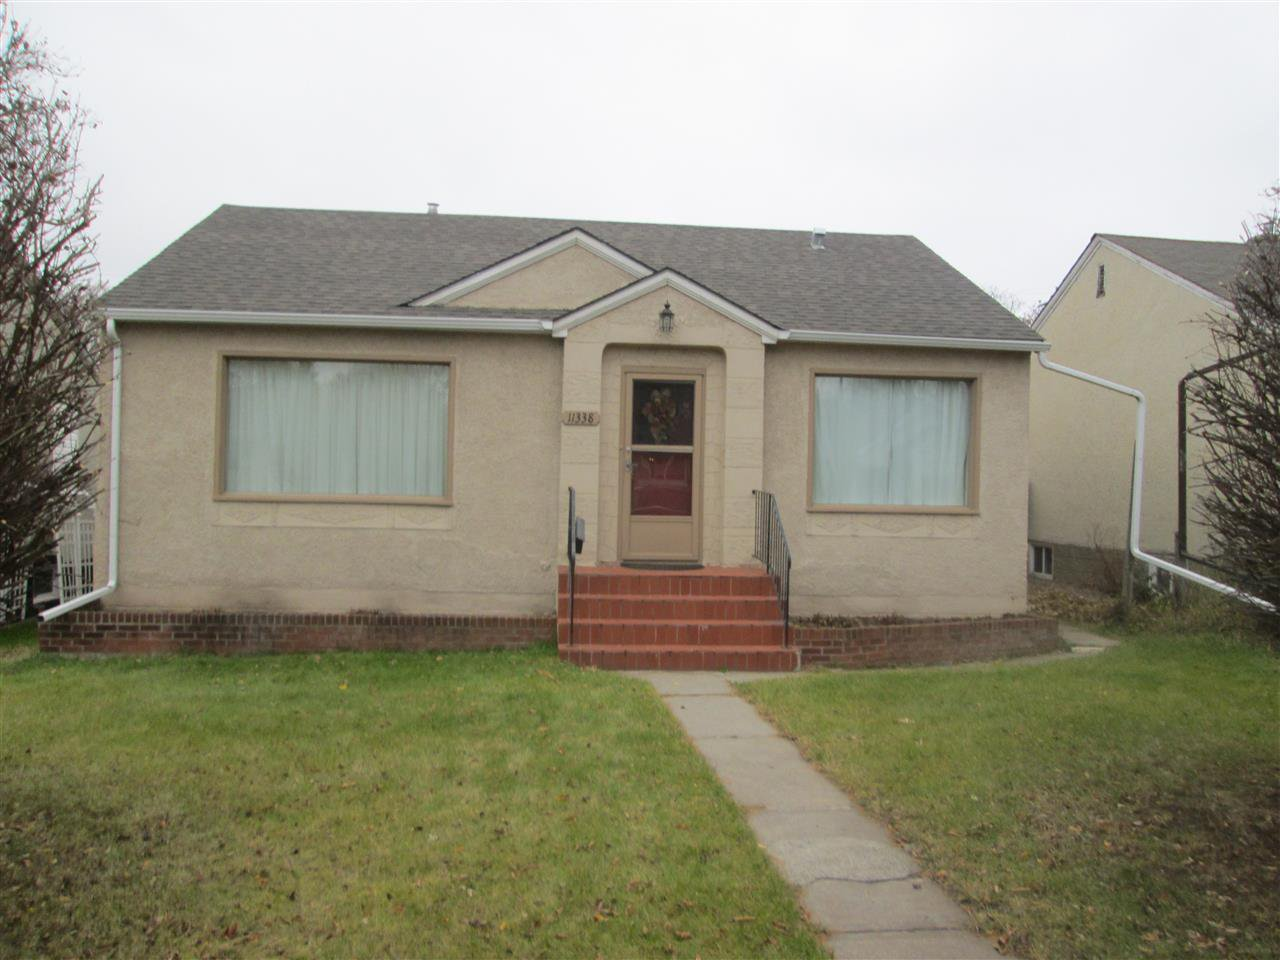 Main Photo: 11338 69 Street in Edmonton: Zone 09 House for sale : MLS®# E4178203